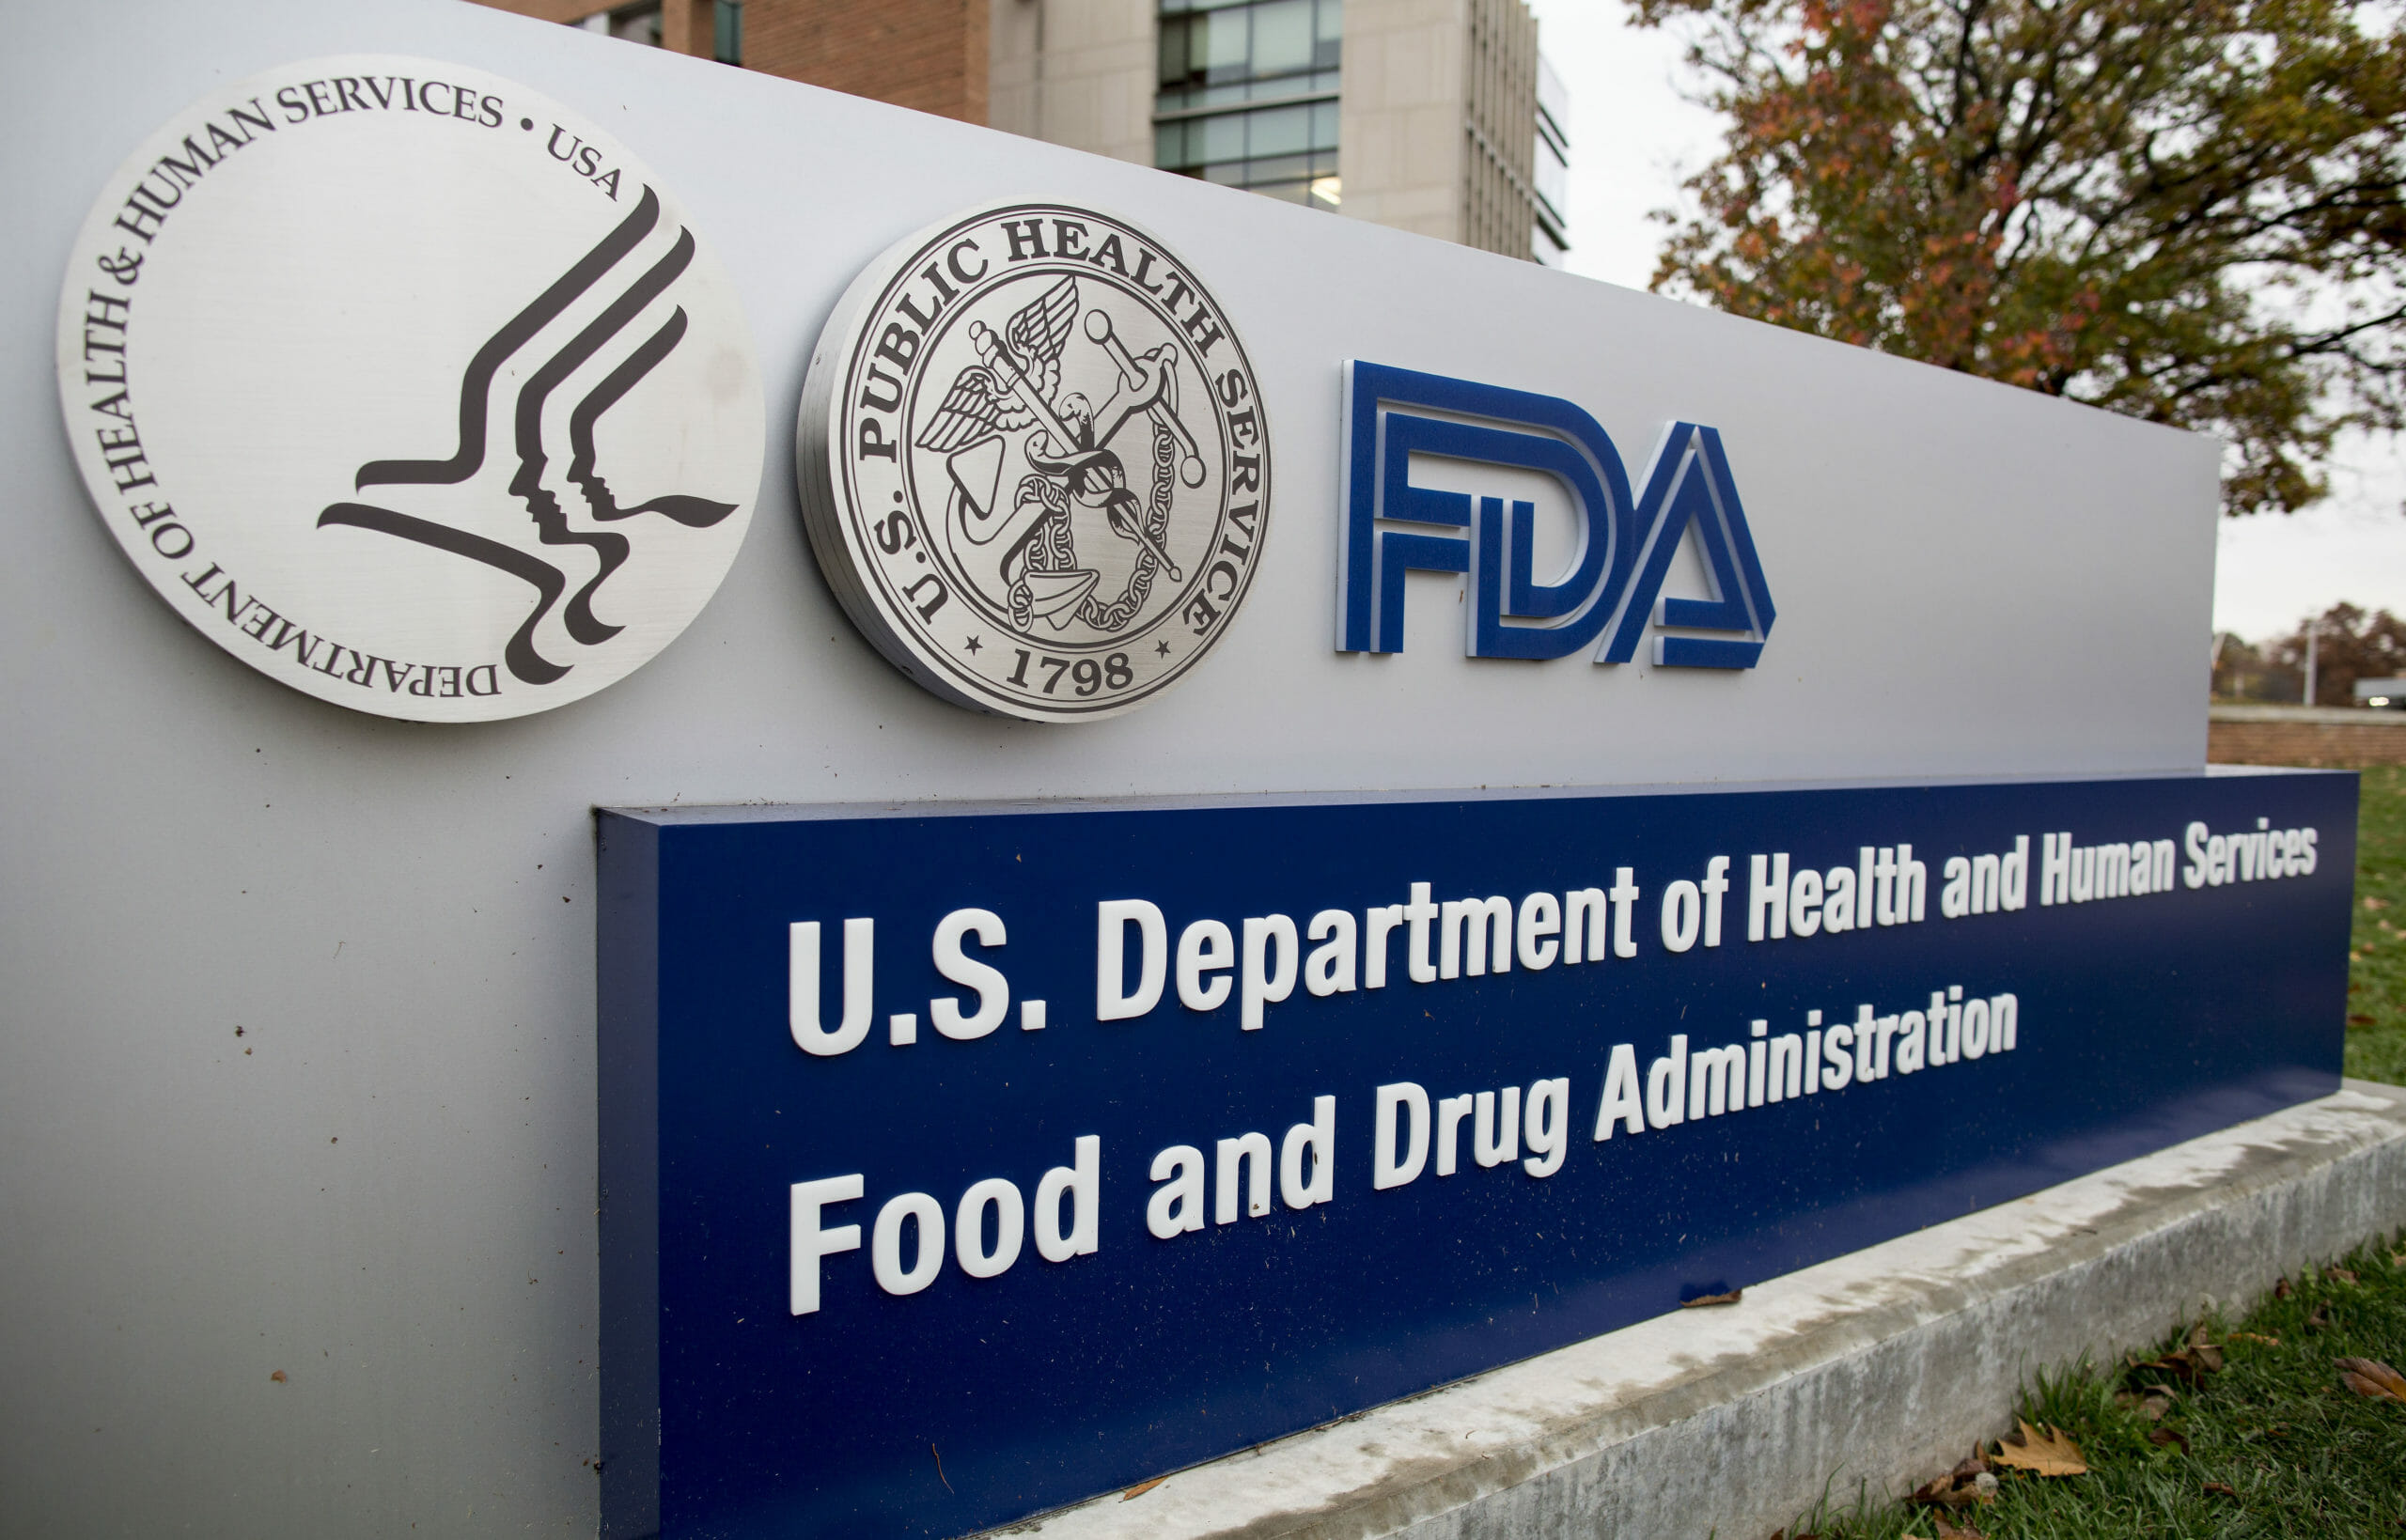 Five things for pharma marketers to know: Thursday, September 3, 2020